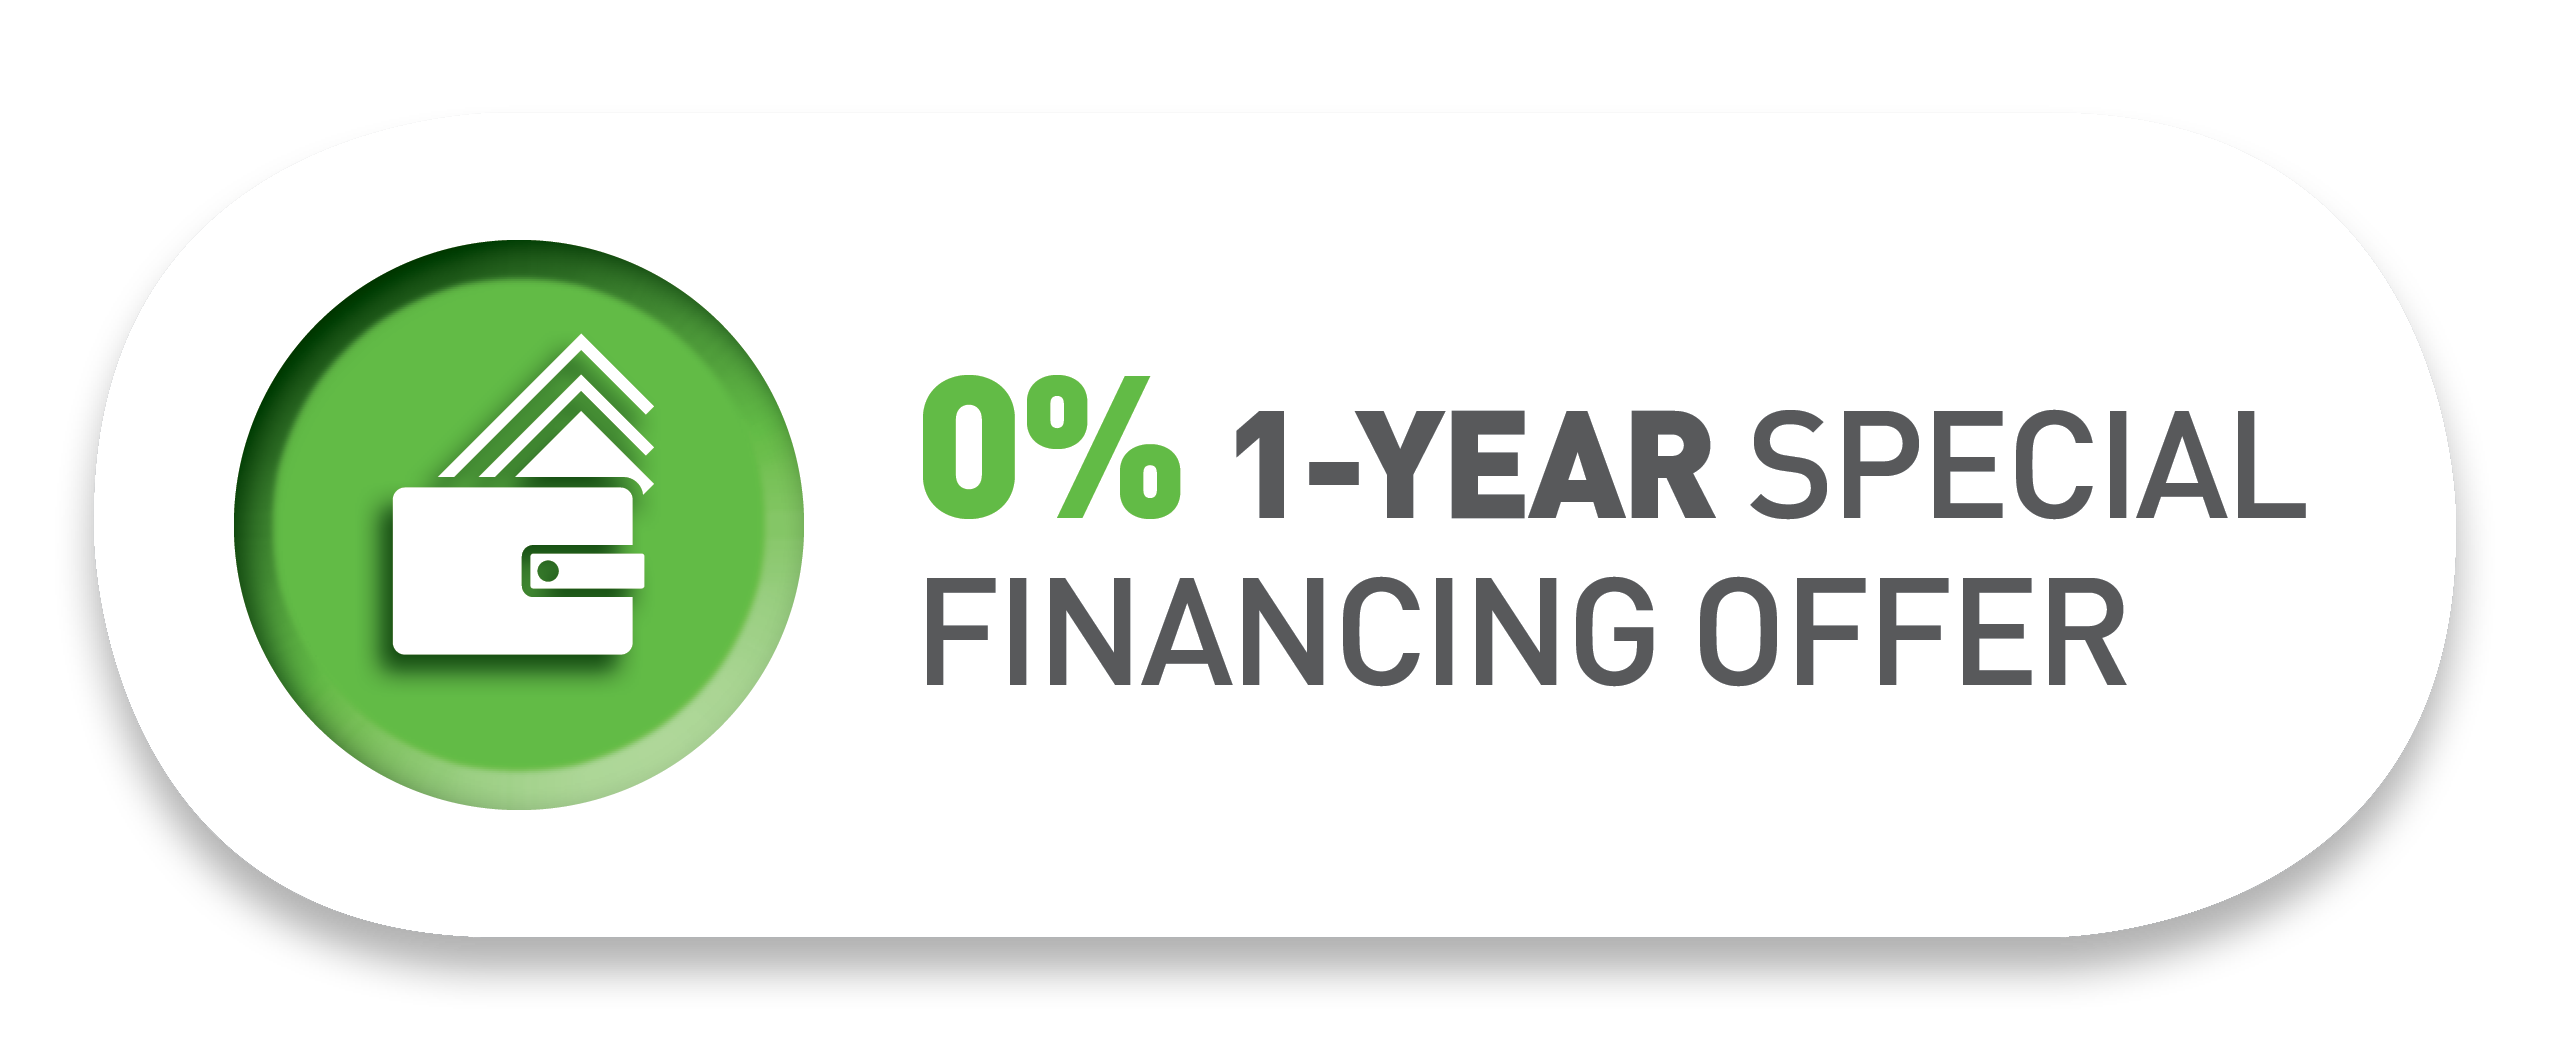 1 year 0% financing promo lease business financing leasing